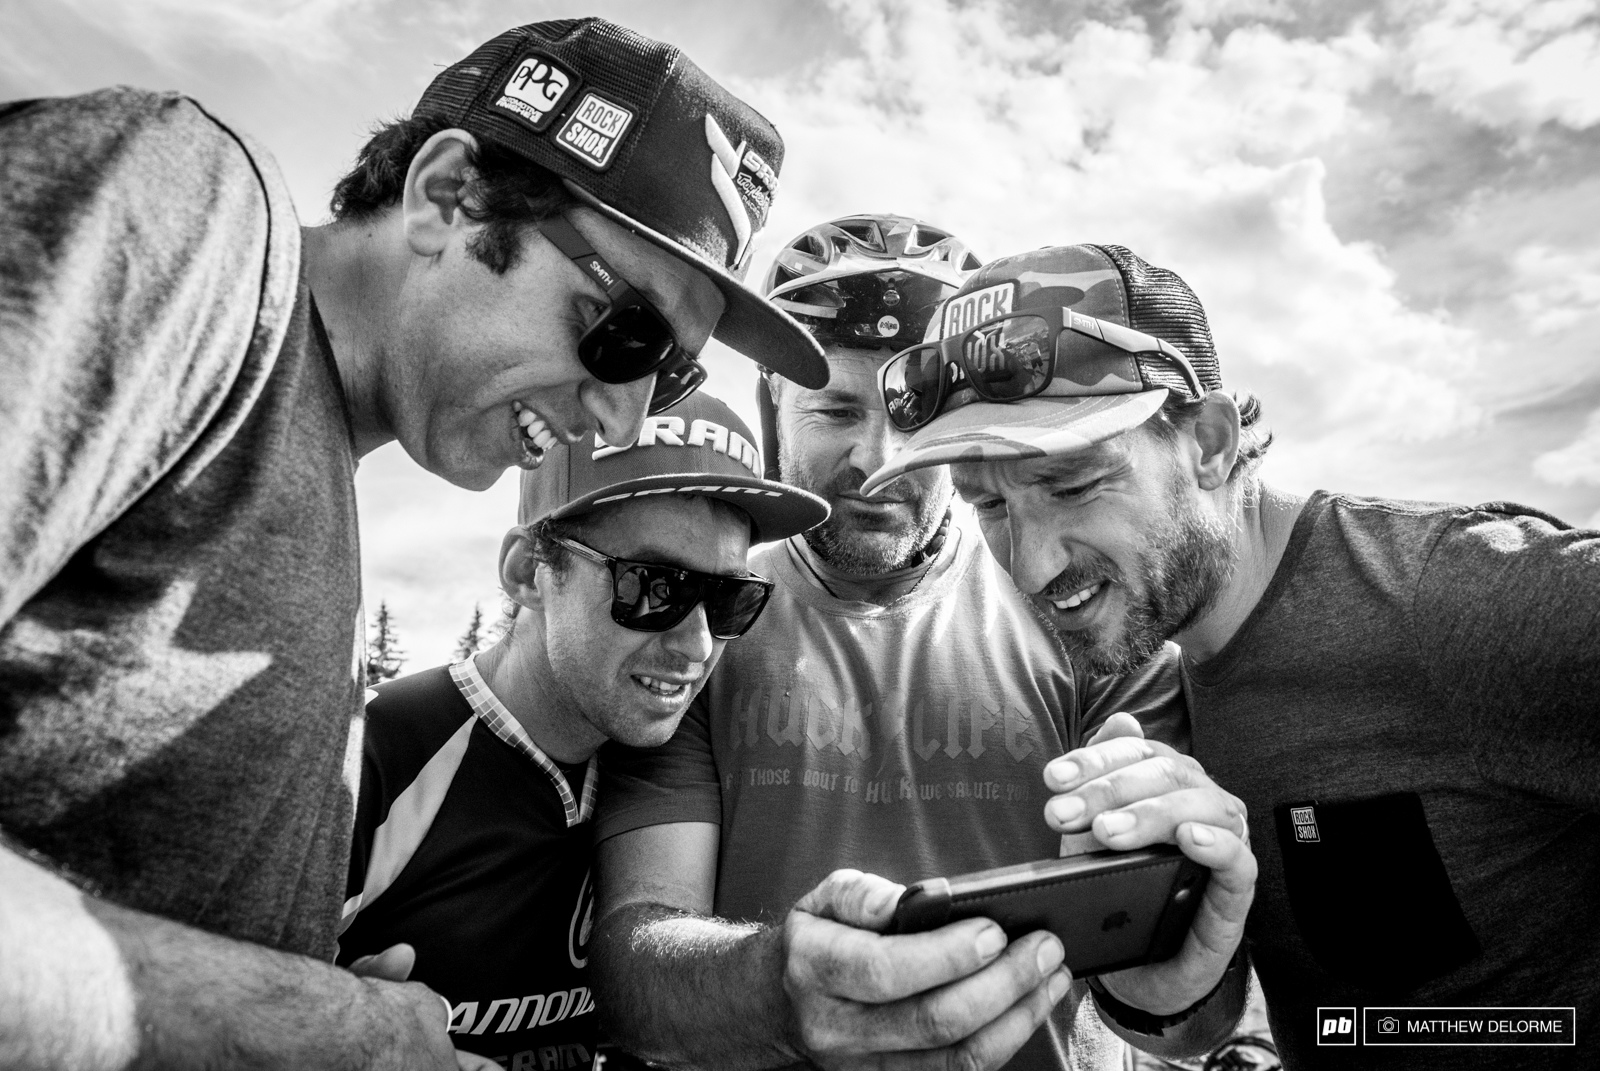 Just a few SRAM lads enjoying some highlights from the drop on stage six.